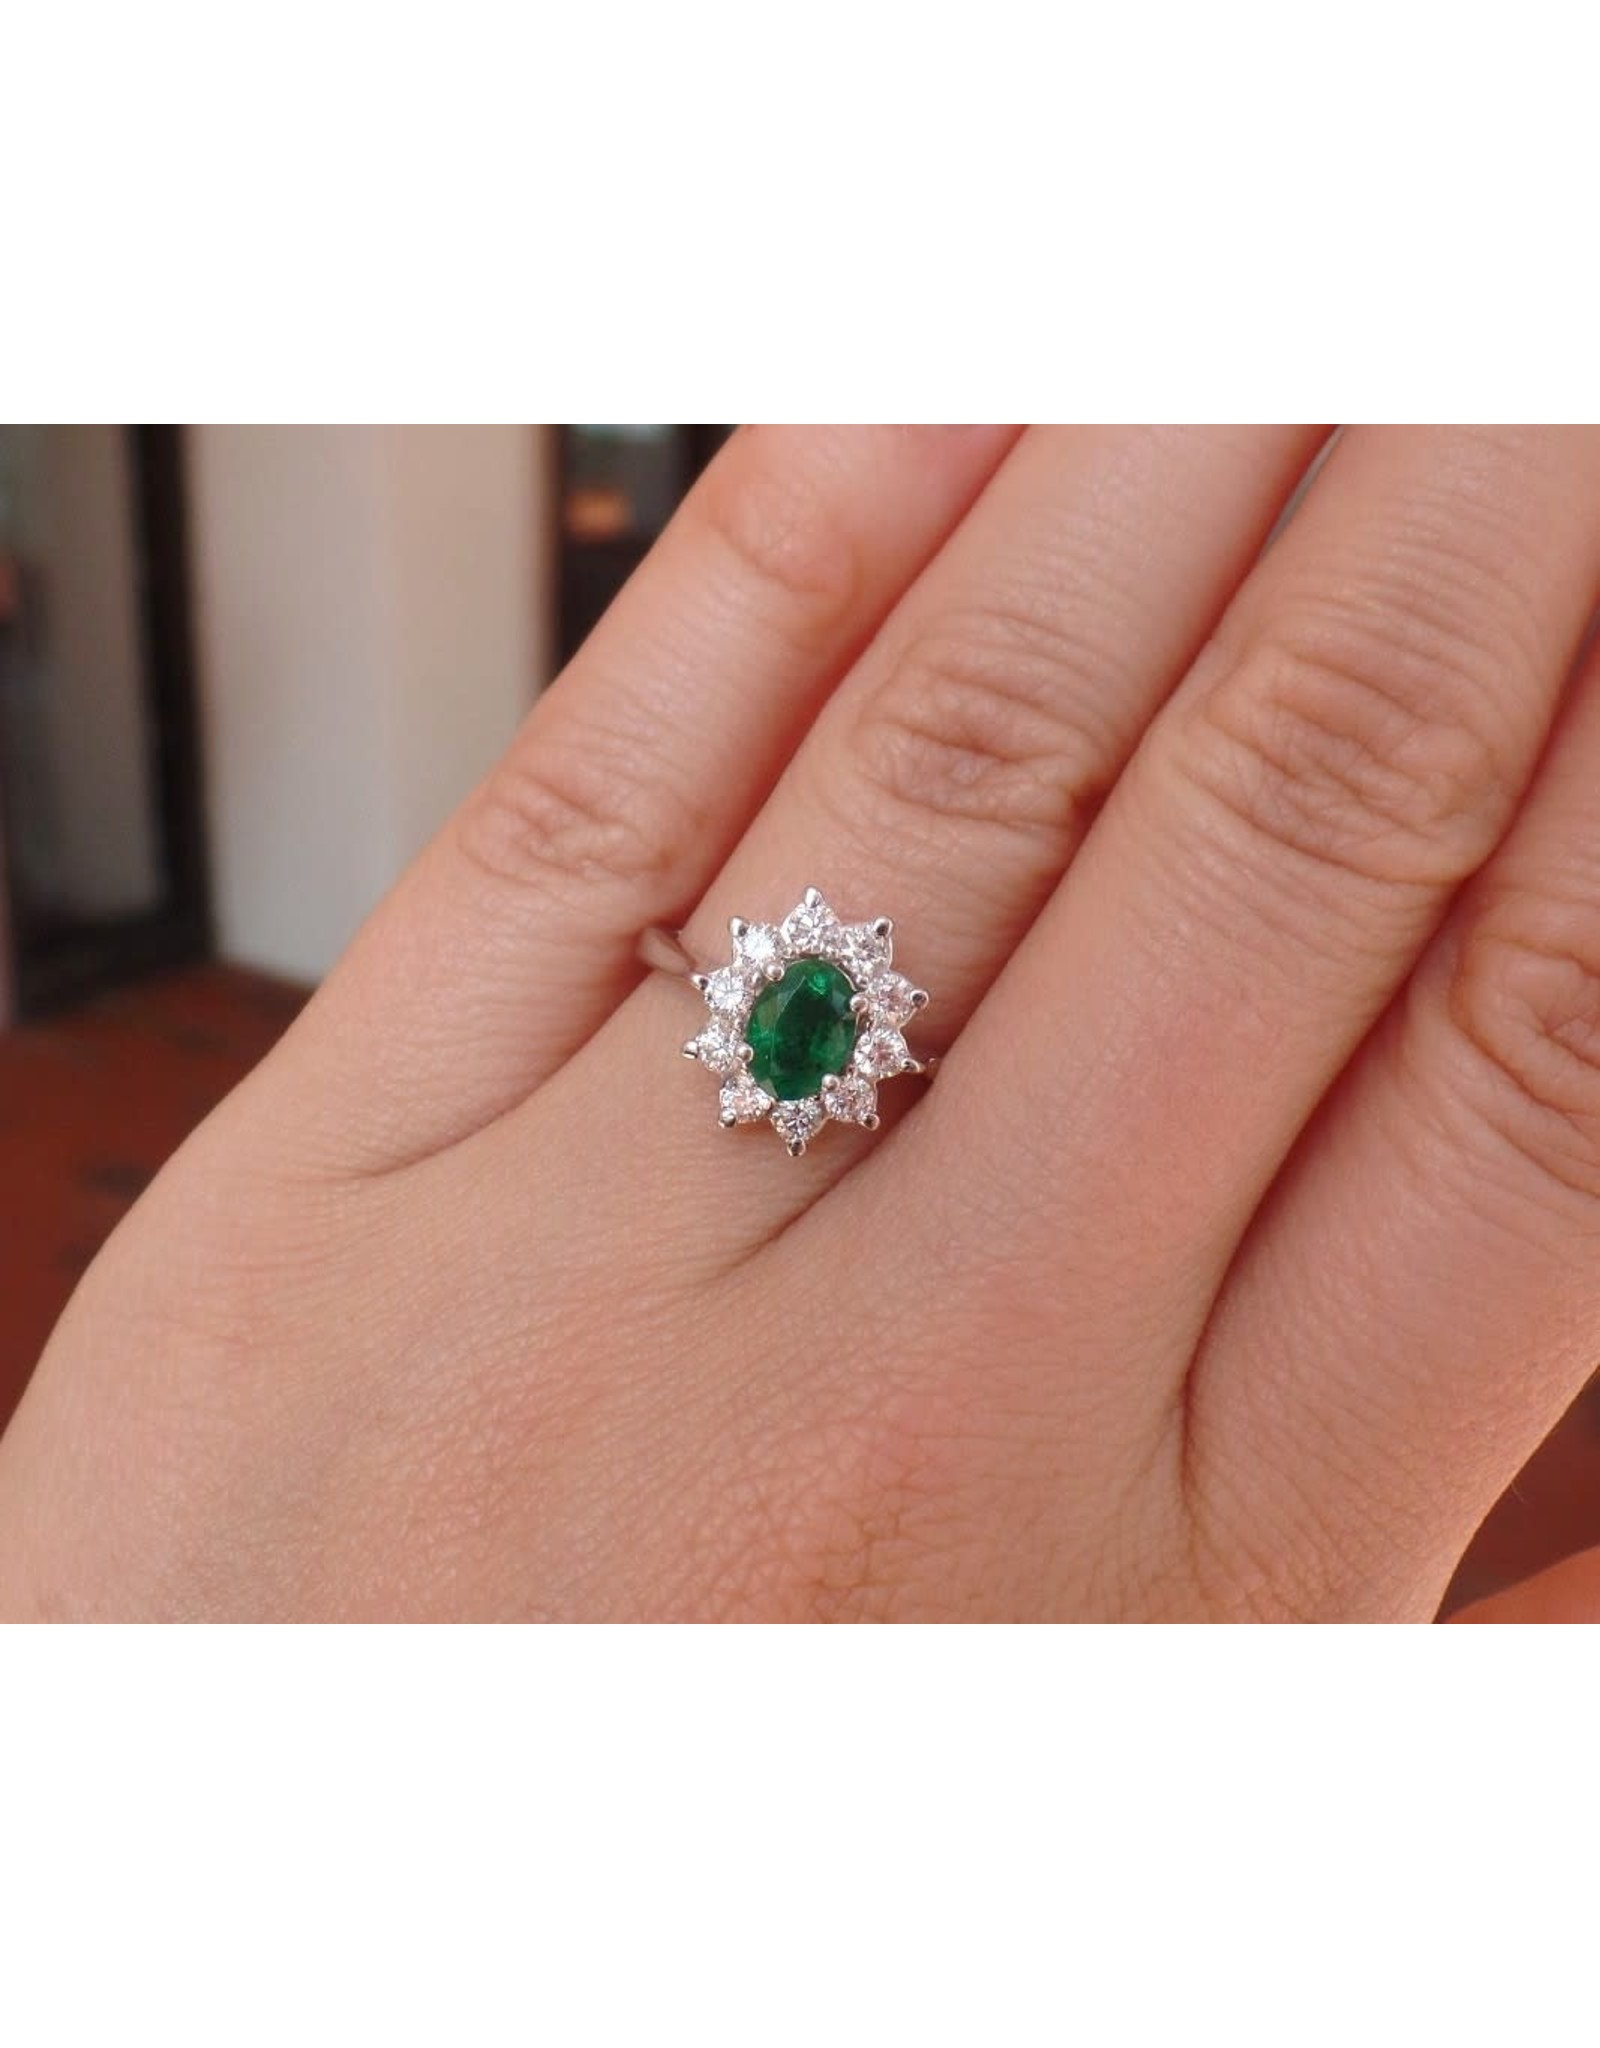 14K White Gold Emerald and Diamond Ring, E: 0.73cts,  D: 0.50cts